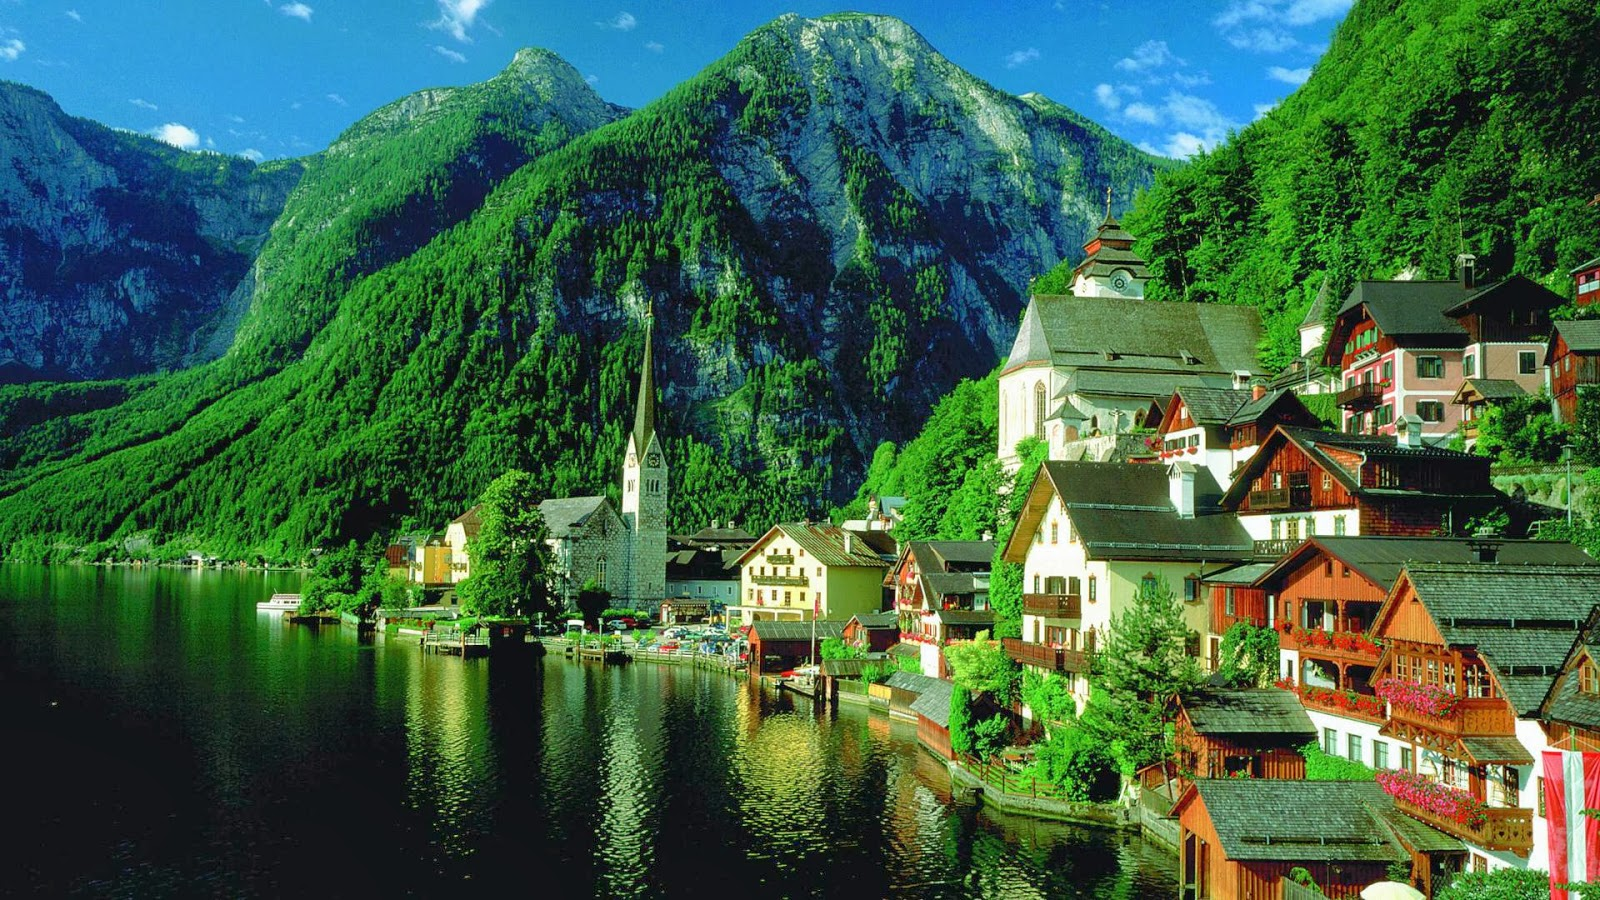 austria, desktop wallpapers, nature wallpaper, hd desktop backgrounds